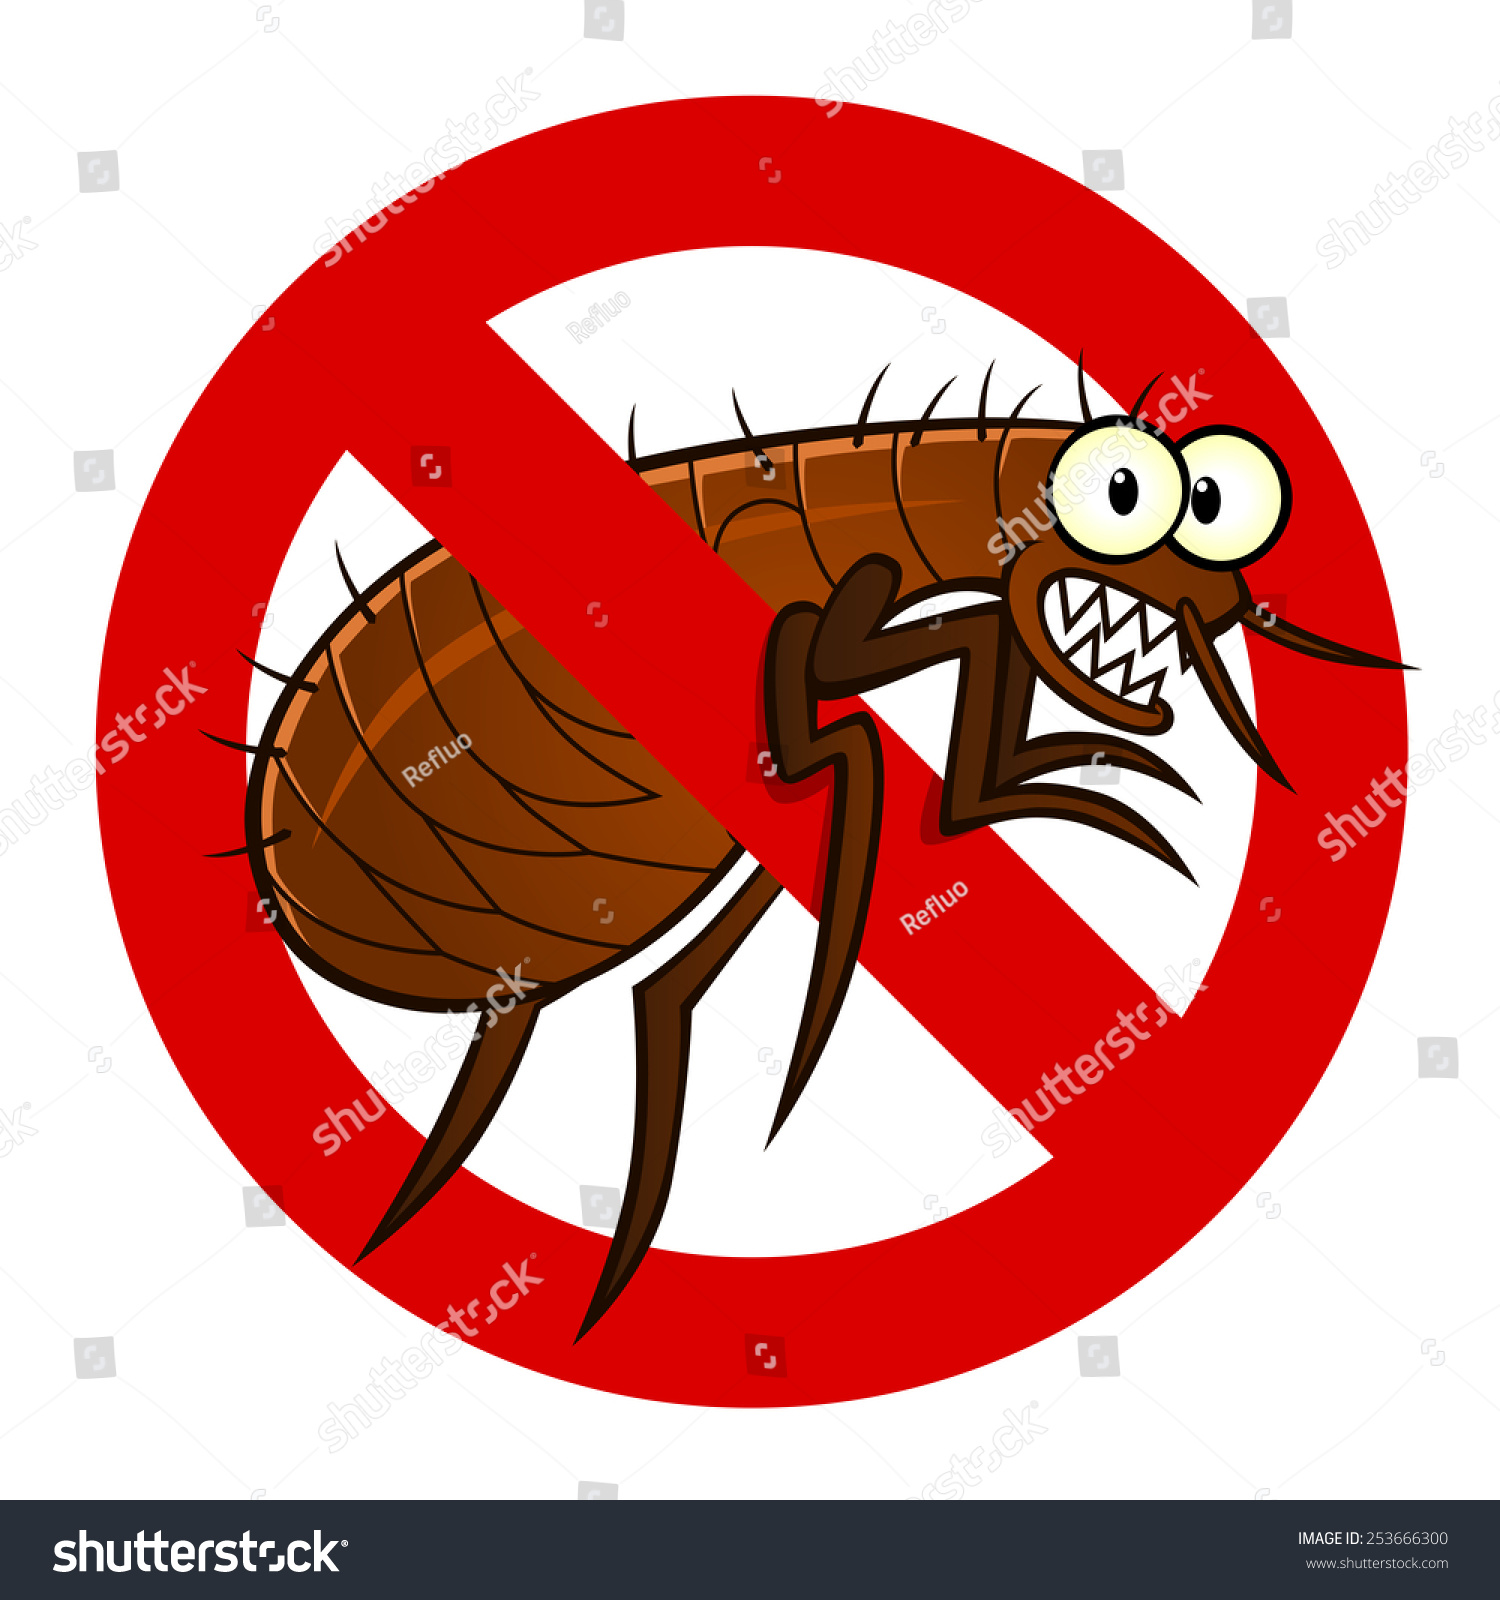 Image Result For How To Exterminate Fleas